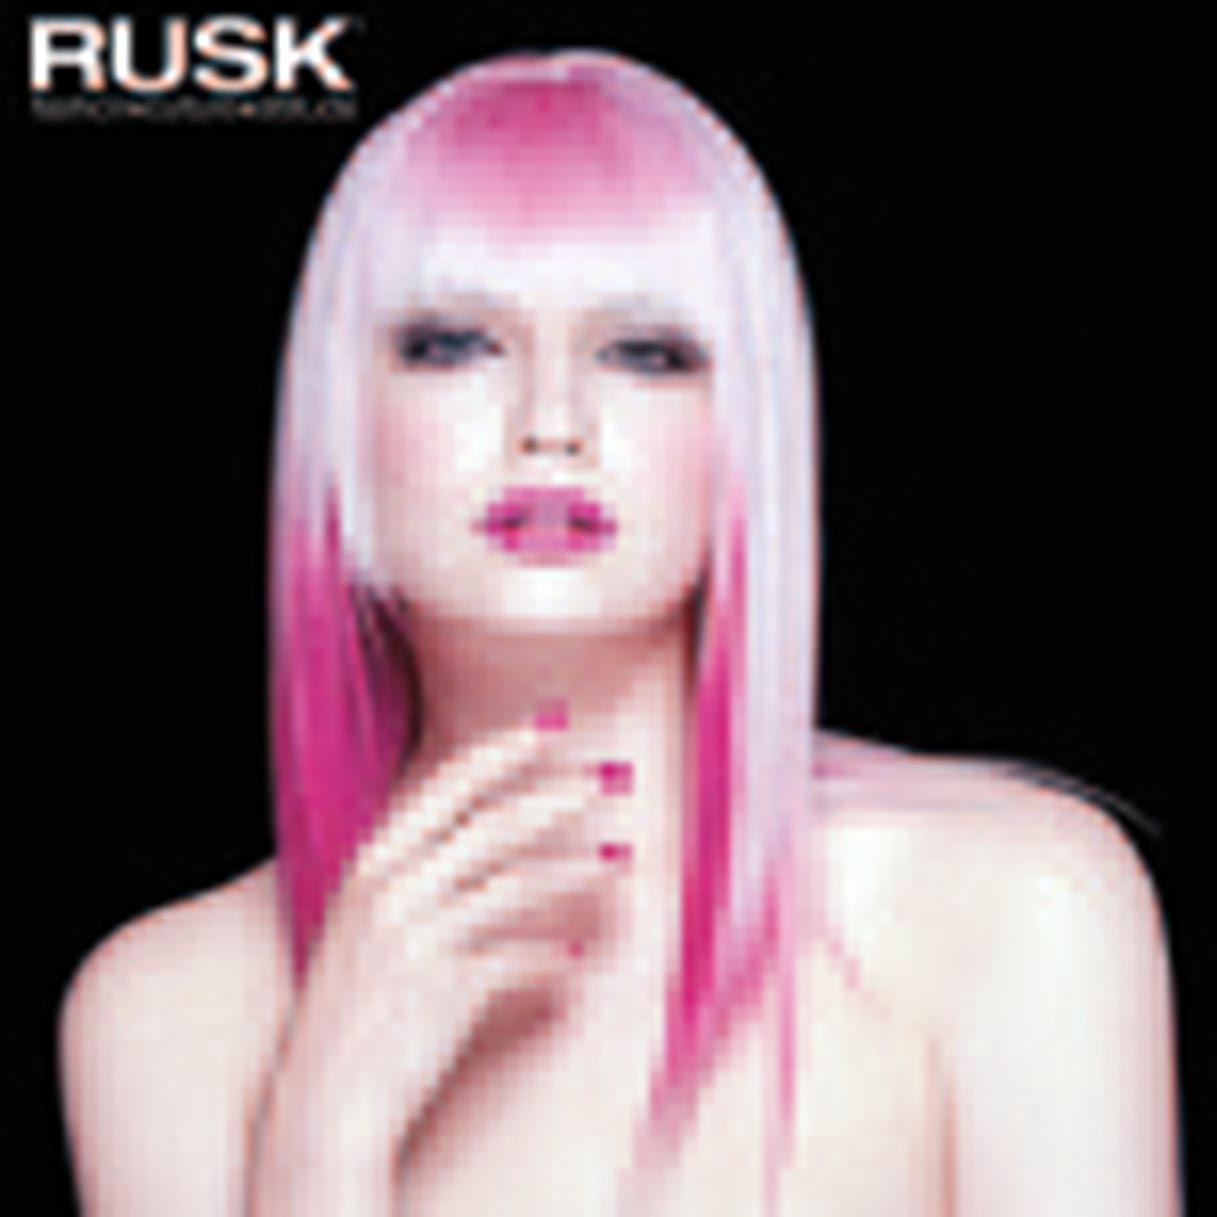 RUSK_DS directGLAM_PINK1_highres